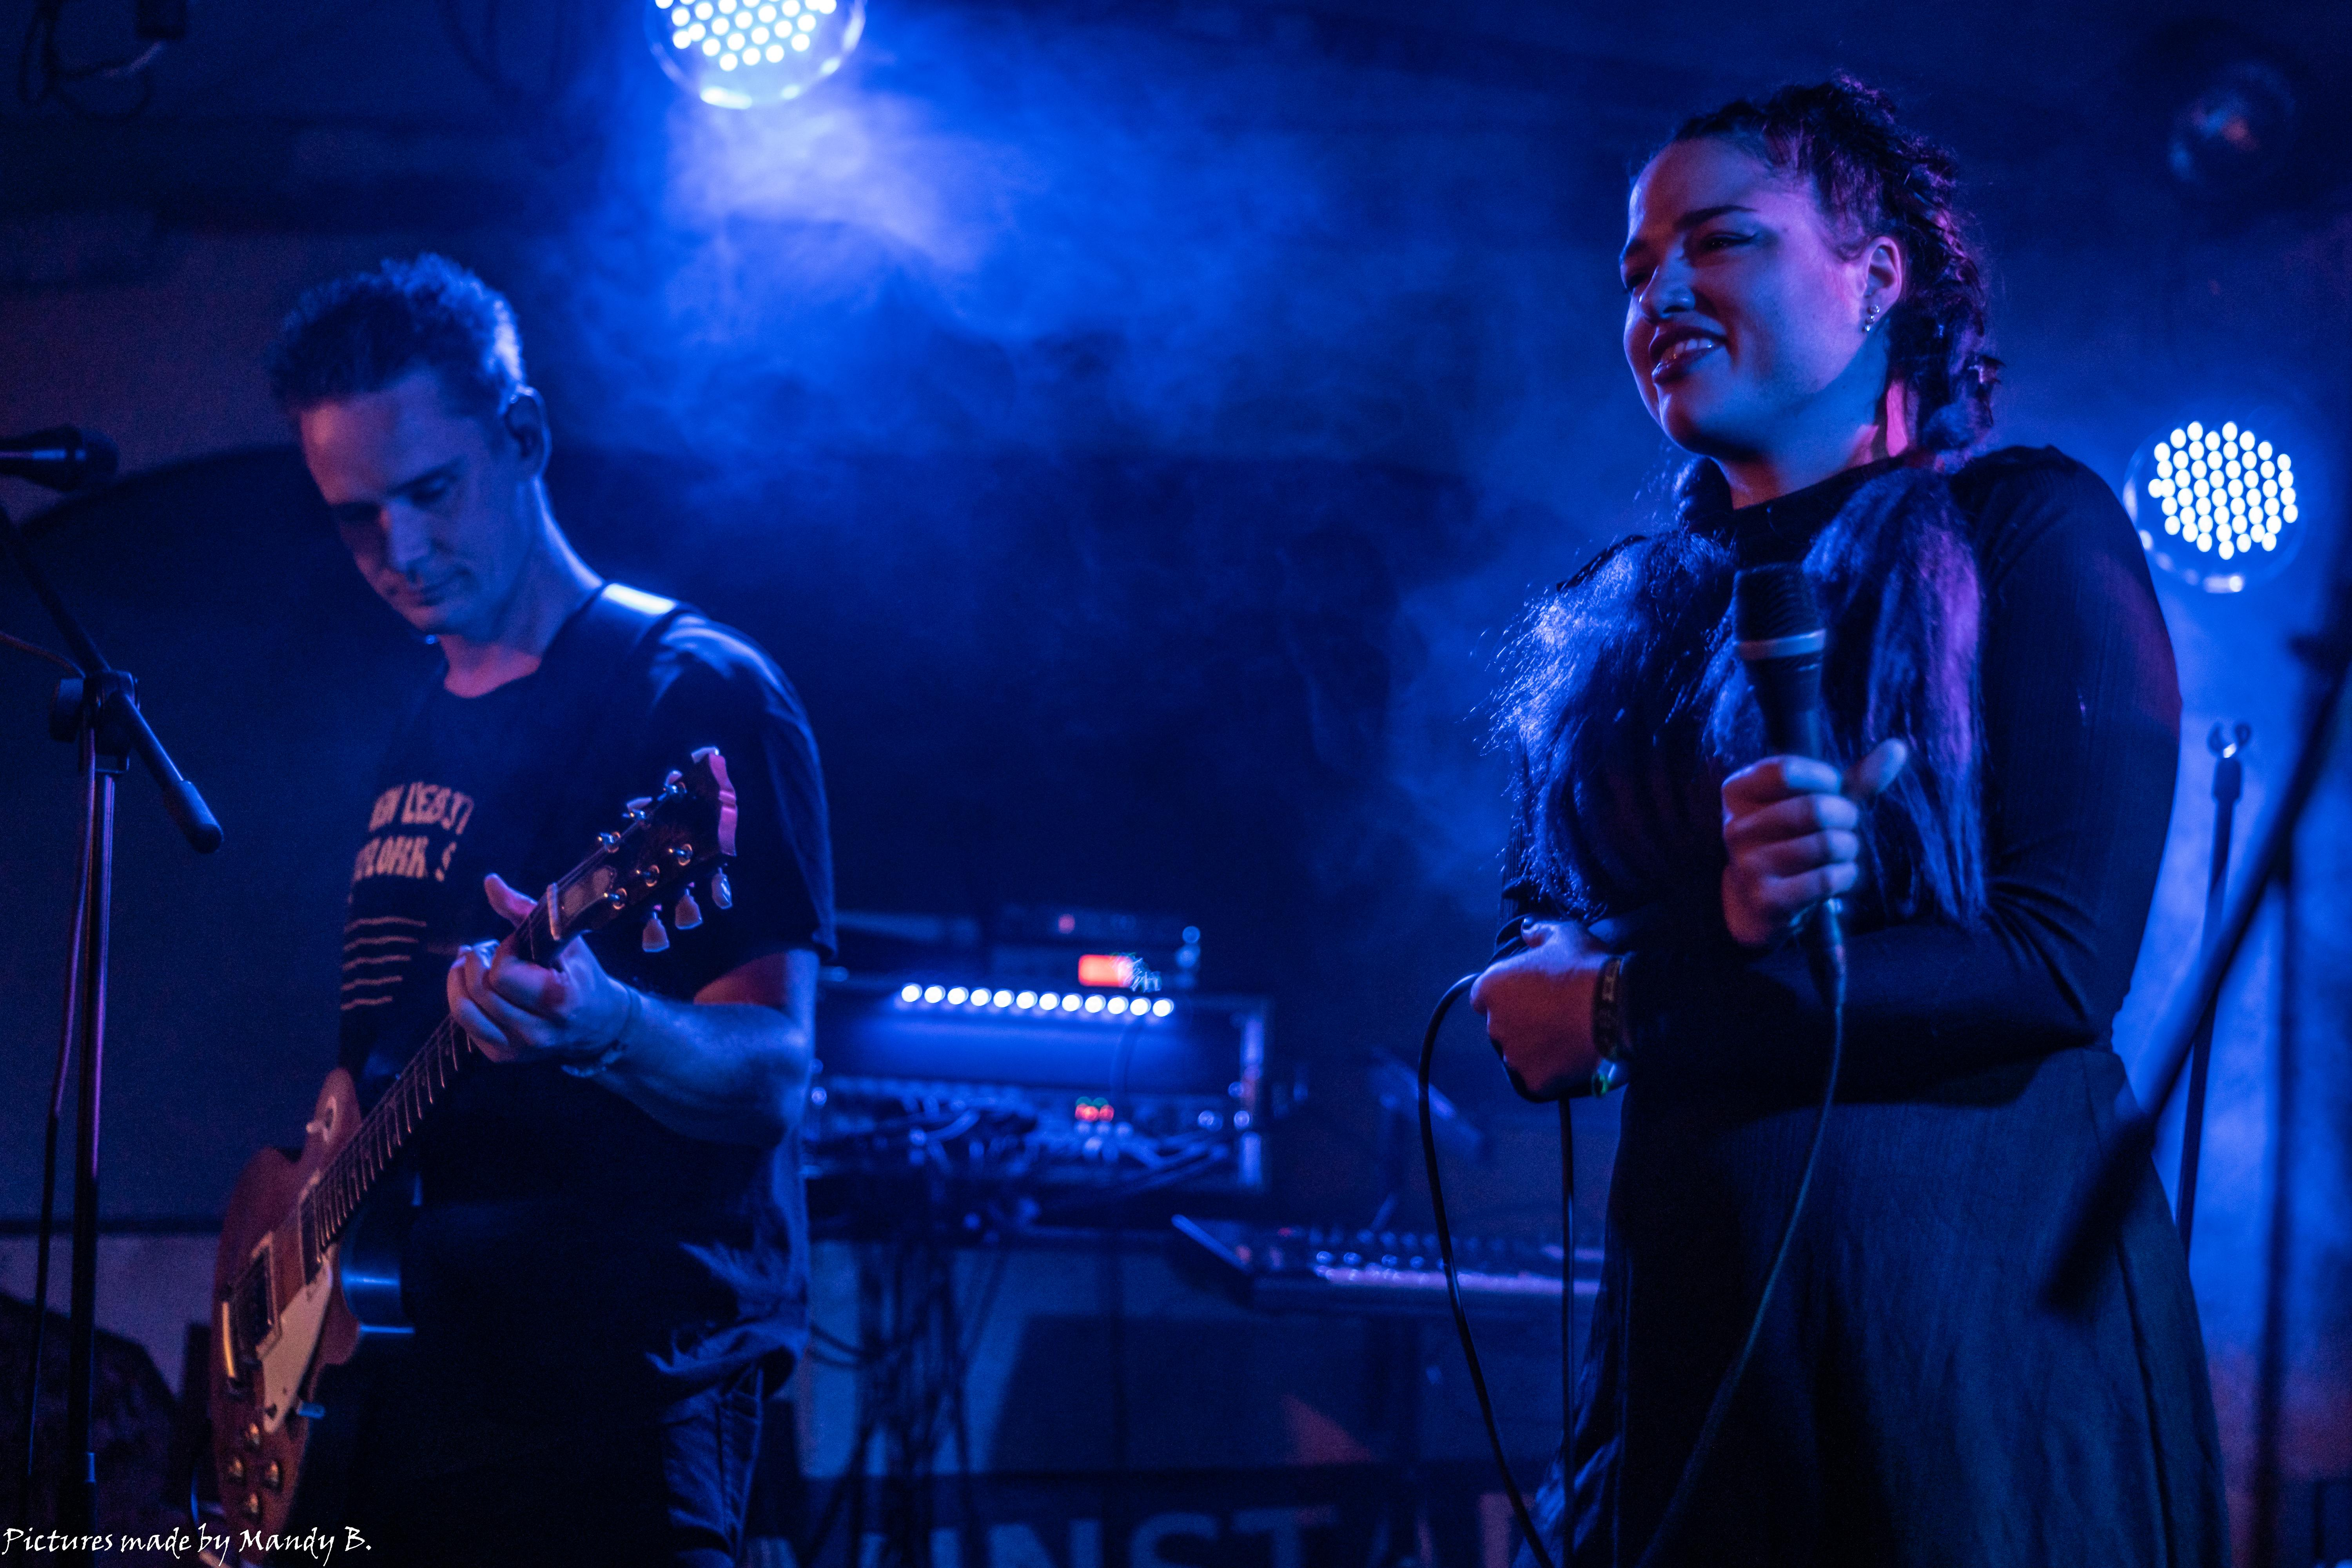 JoSe and San Dra of Waiting in Vain at Club Eule in Dresden on 20 September 2019